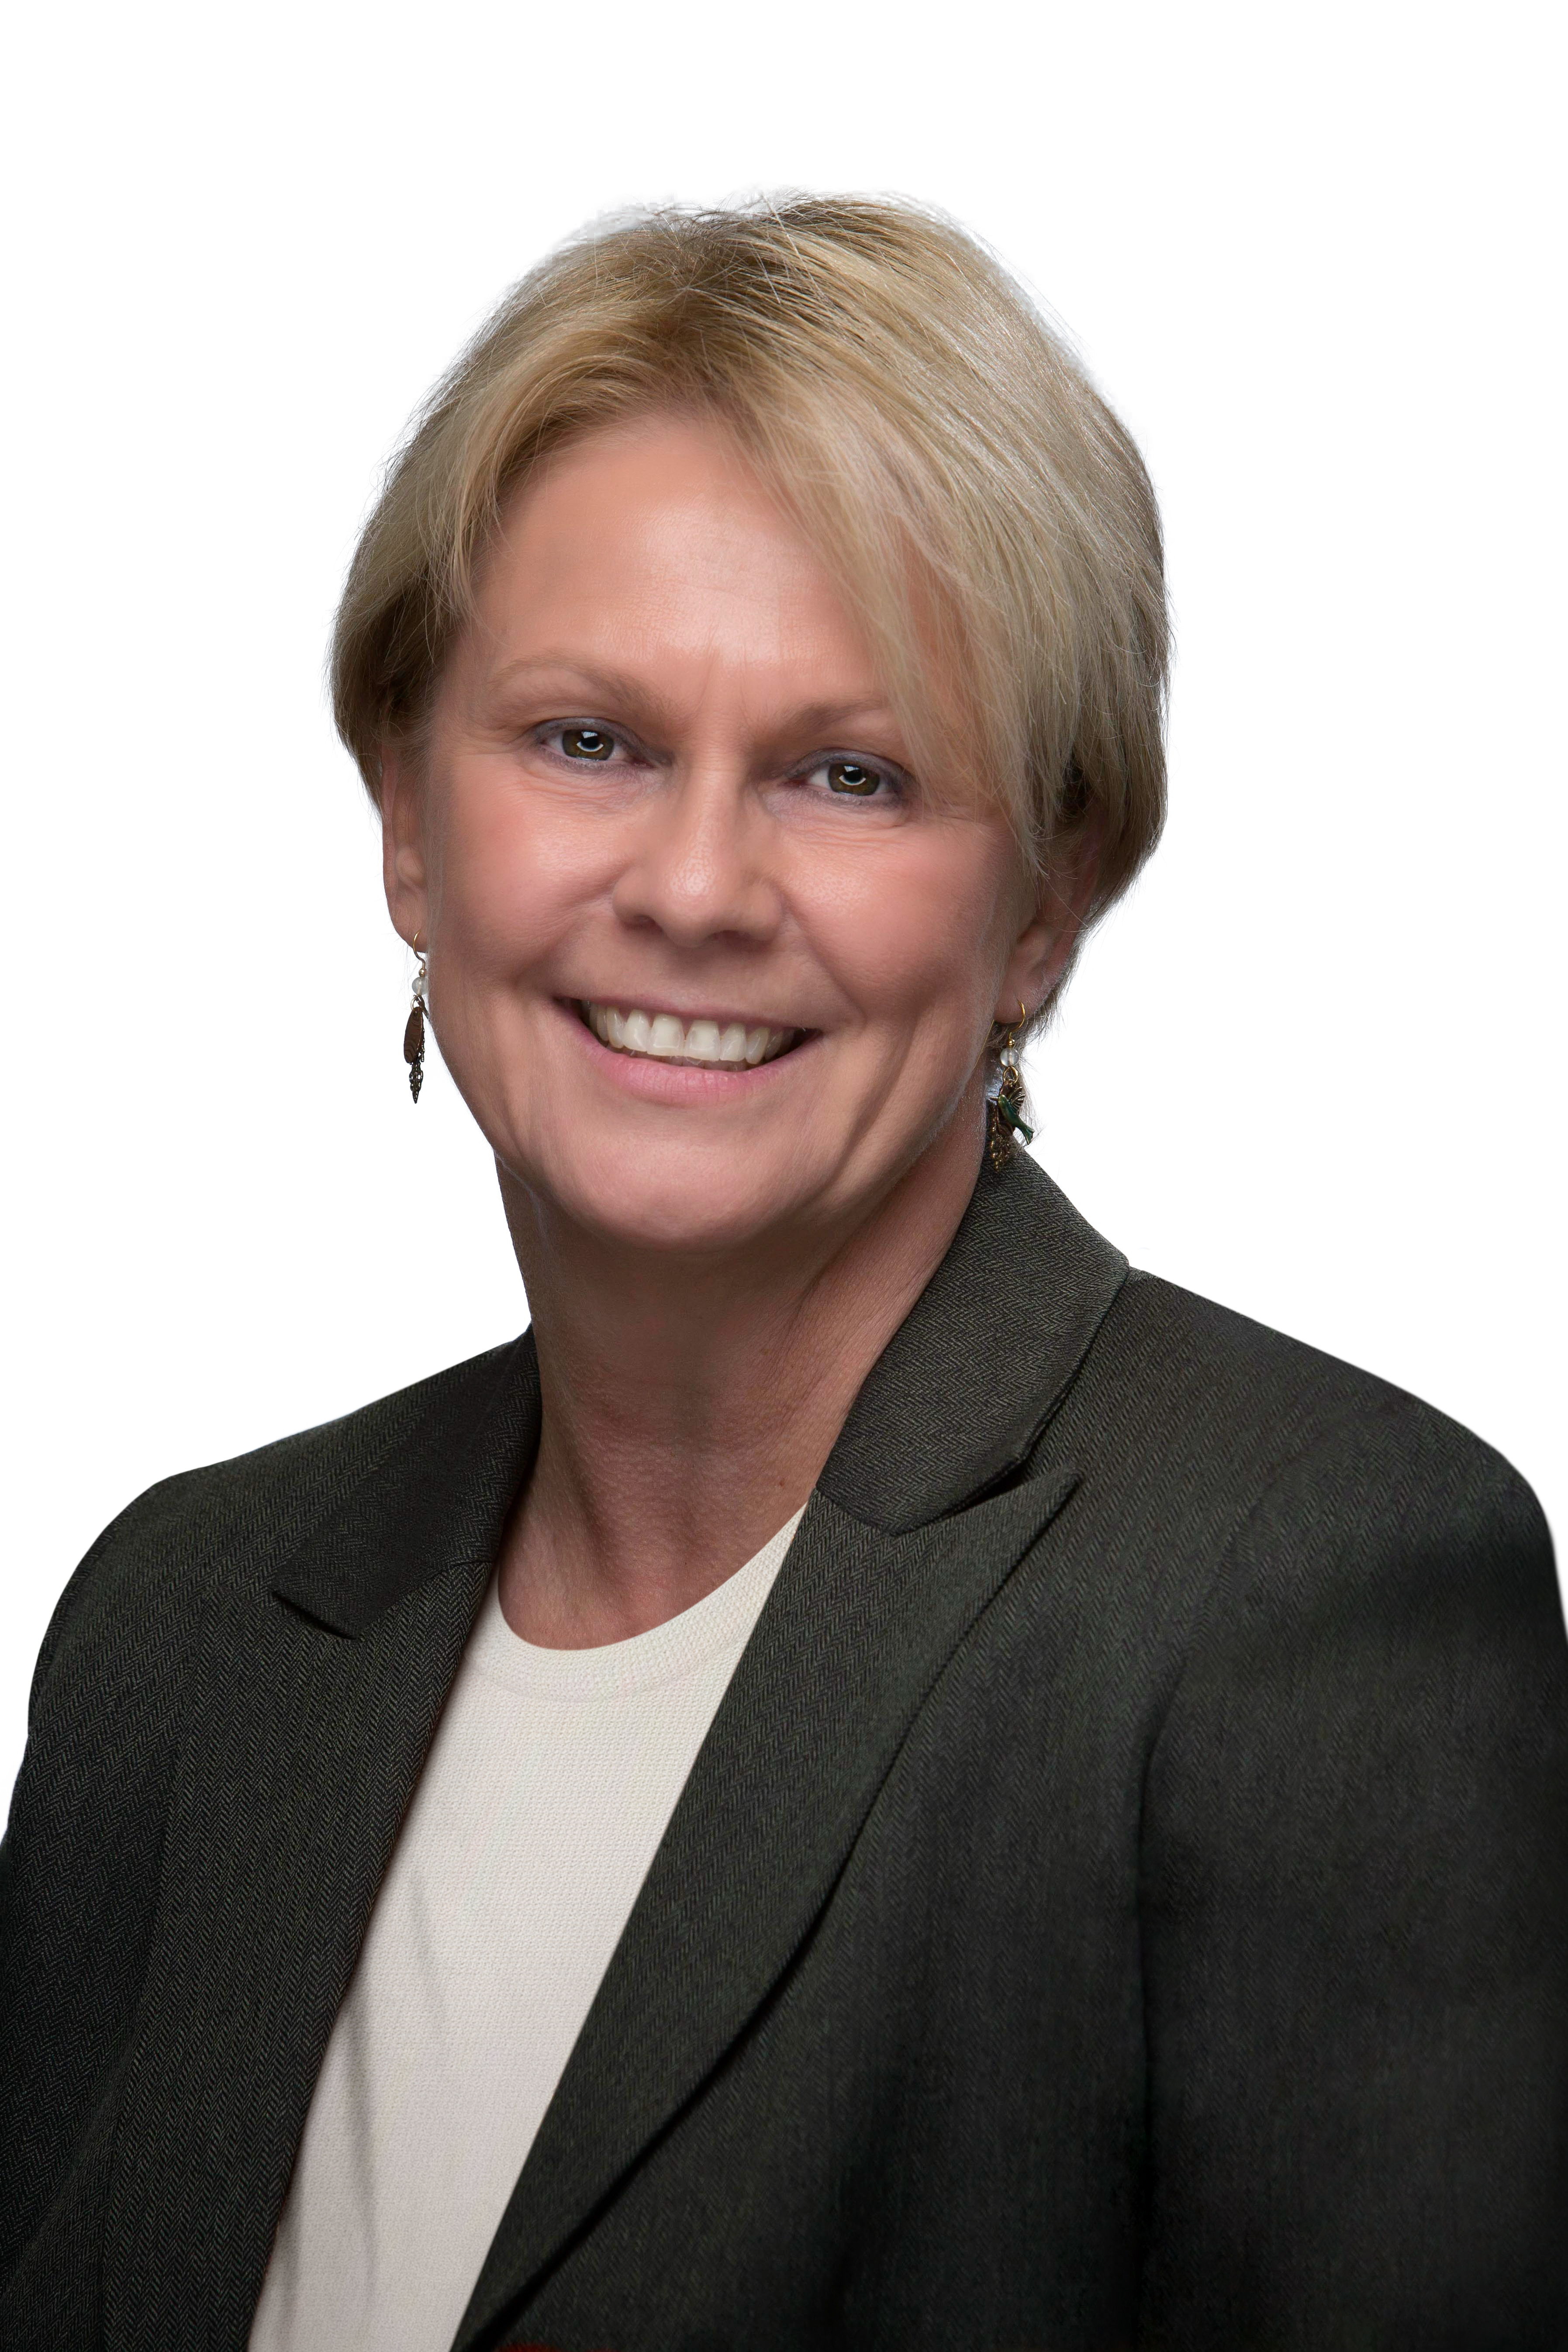 Vicki HollubExecutive VP of U.S. Operations at Oxy Oil and Gas